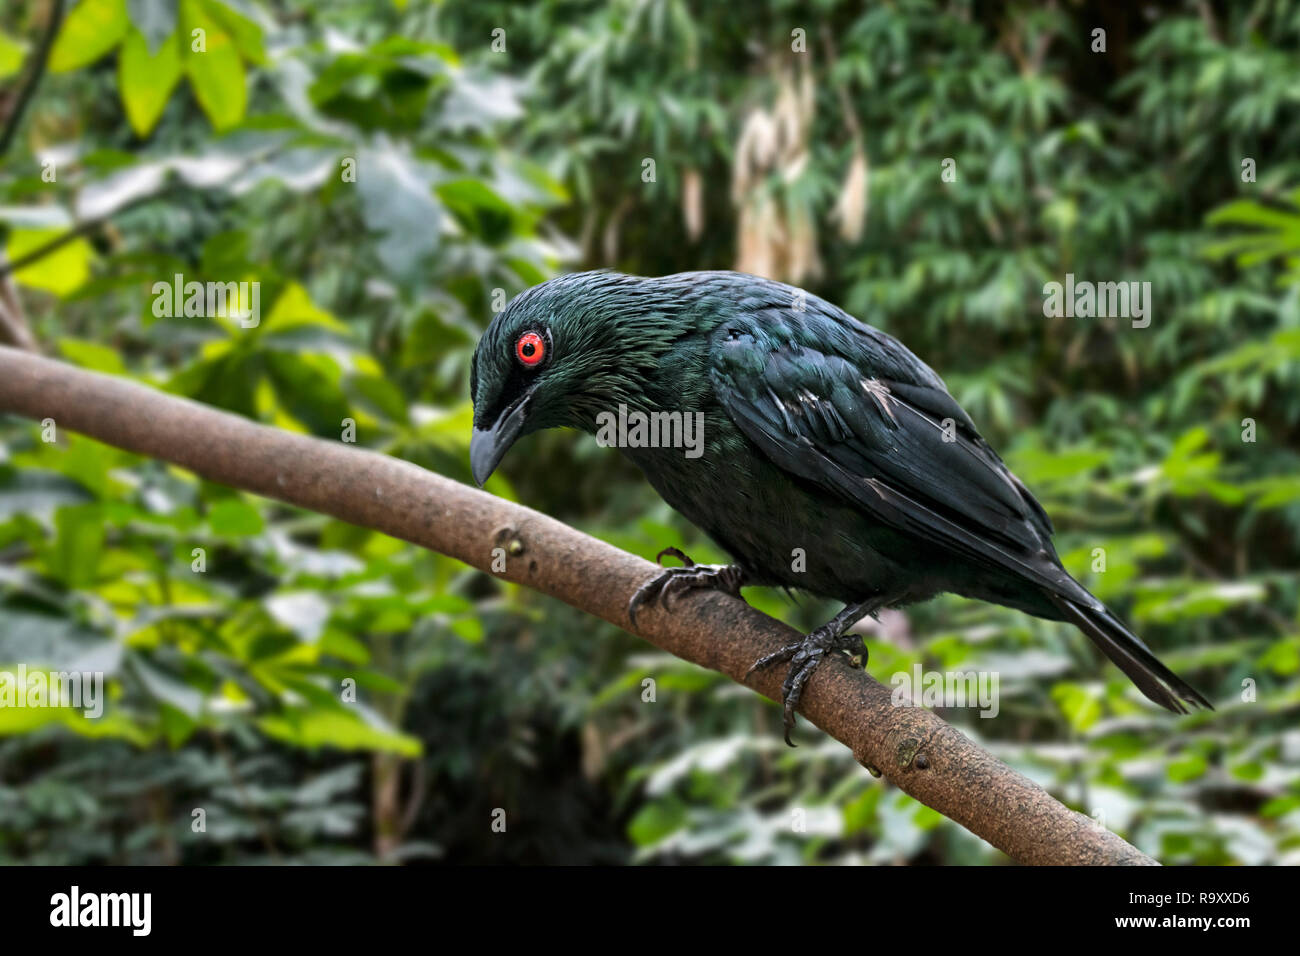 Asian glossy starling (Aplonis panayensis) perched in tree, native to tropical mangrove forests of the Indian subcontinent, Asia - Stock Image